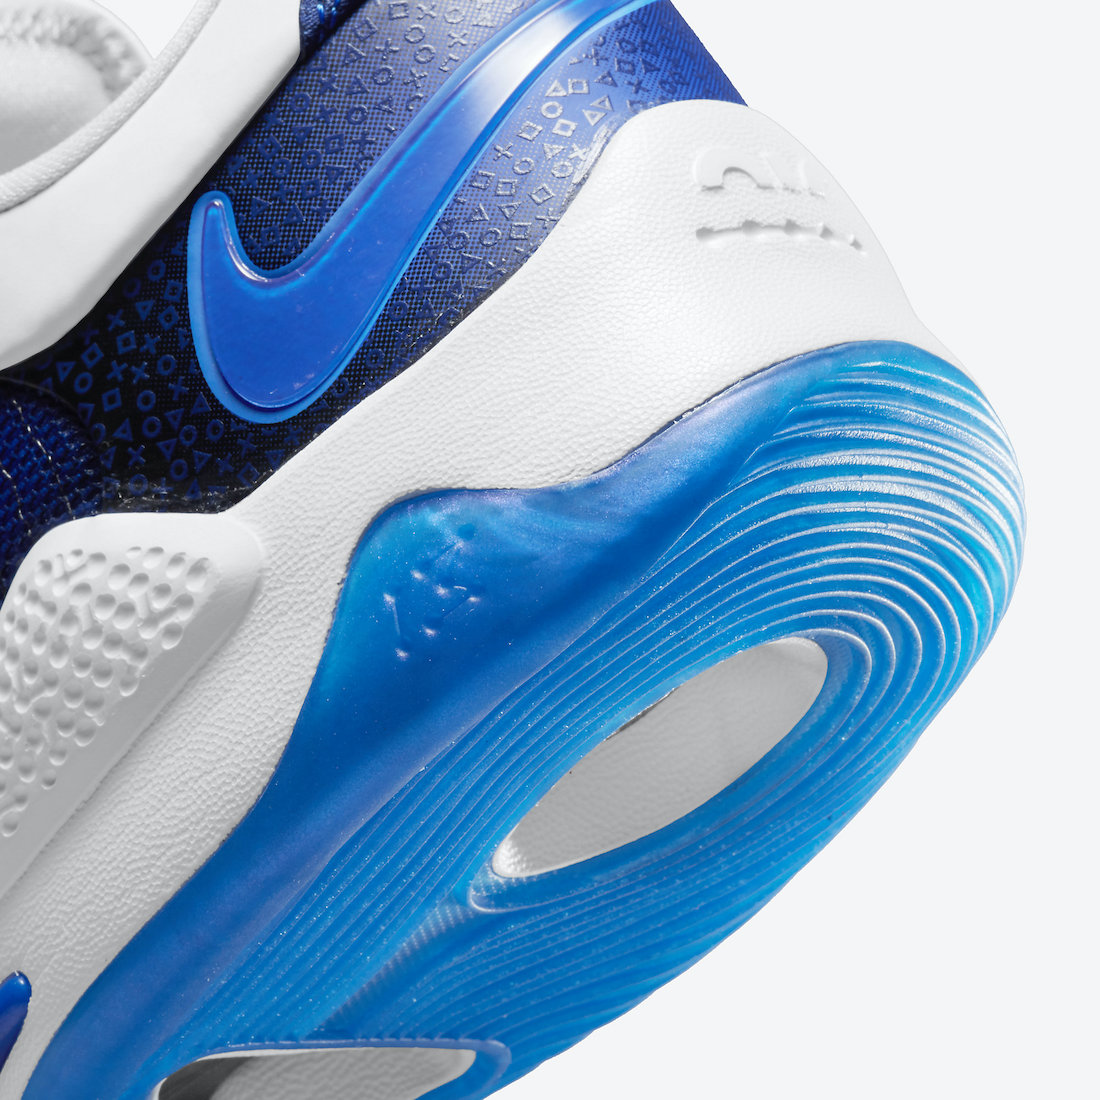 Nike PG 5 PlayStation 5 CW3144-400 Release Date